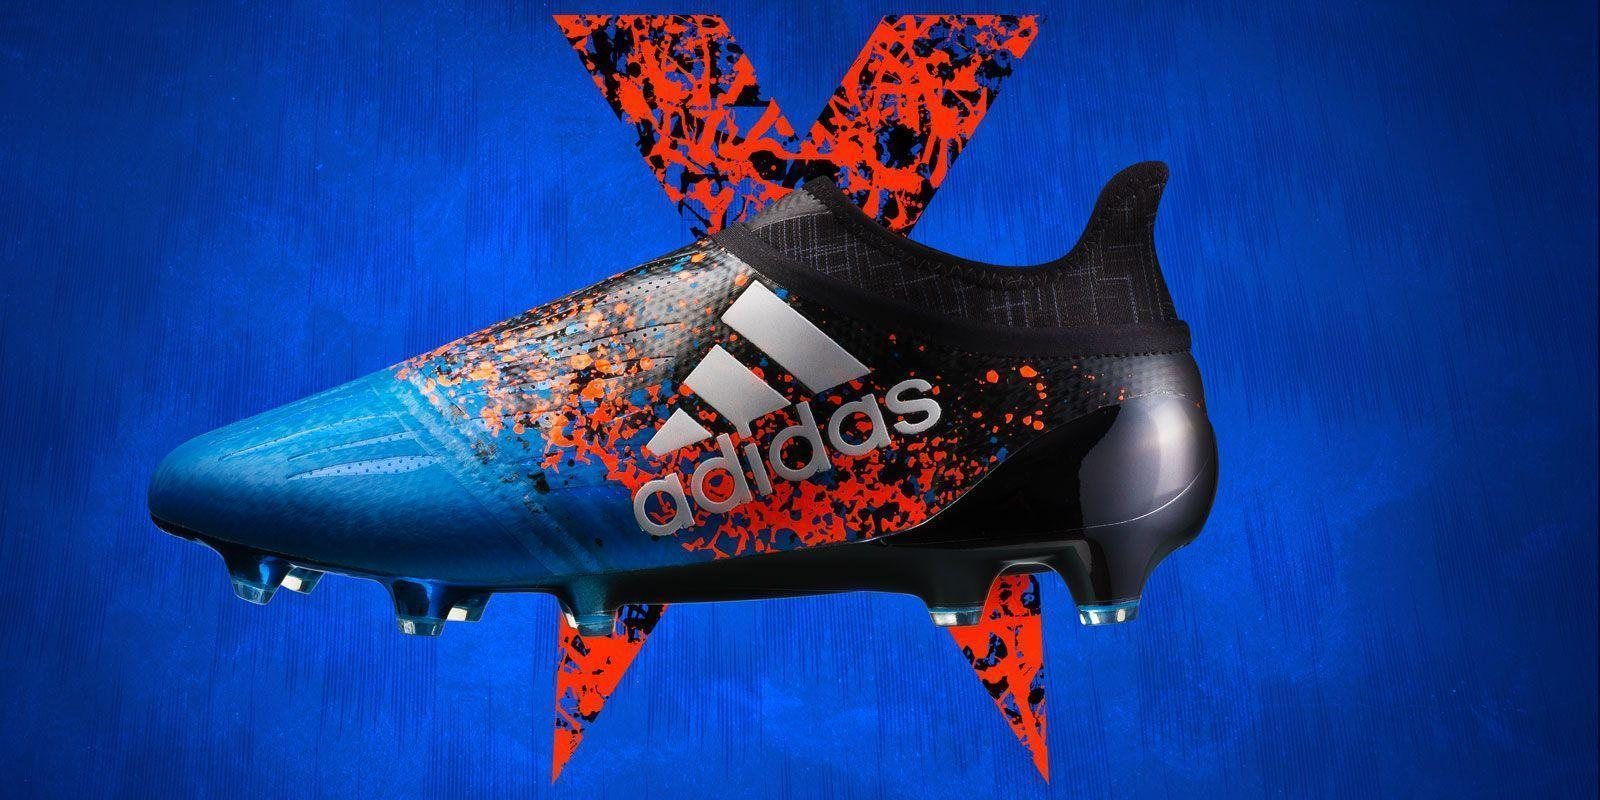 sports shoes b845a 1bdb6 Adidas Boots HD Wallpapers 5   Football Wallpapers   Pinterest .